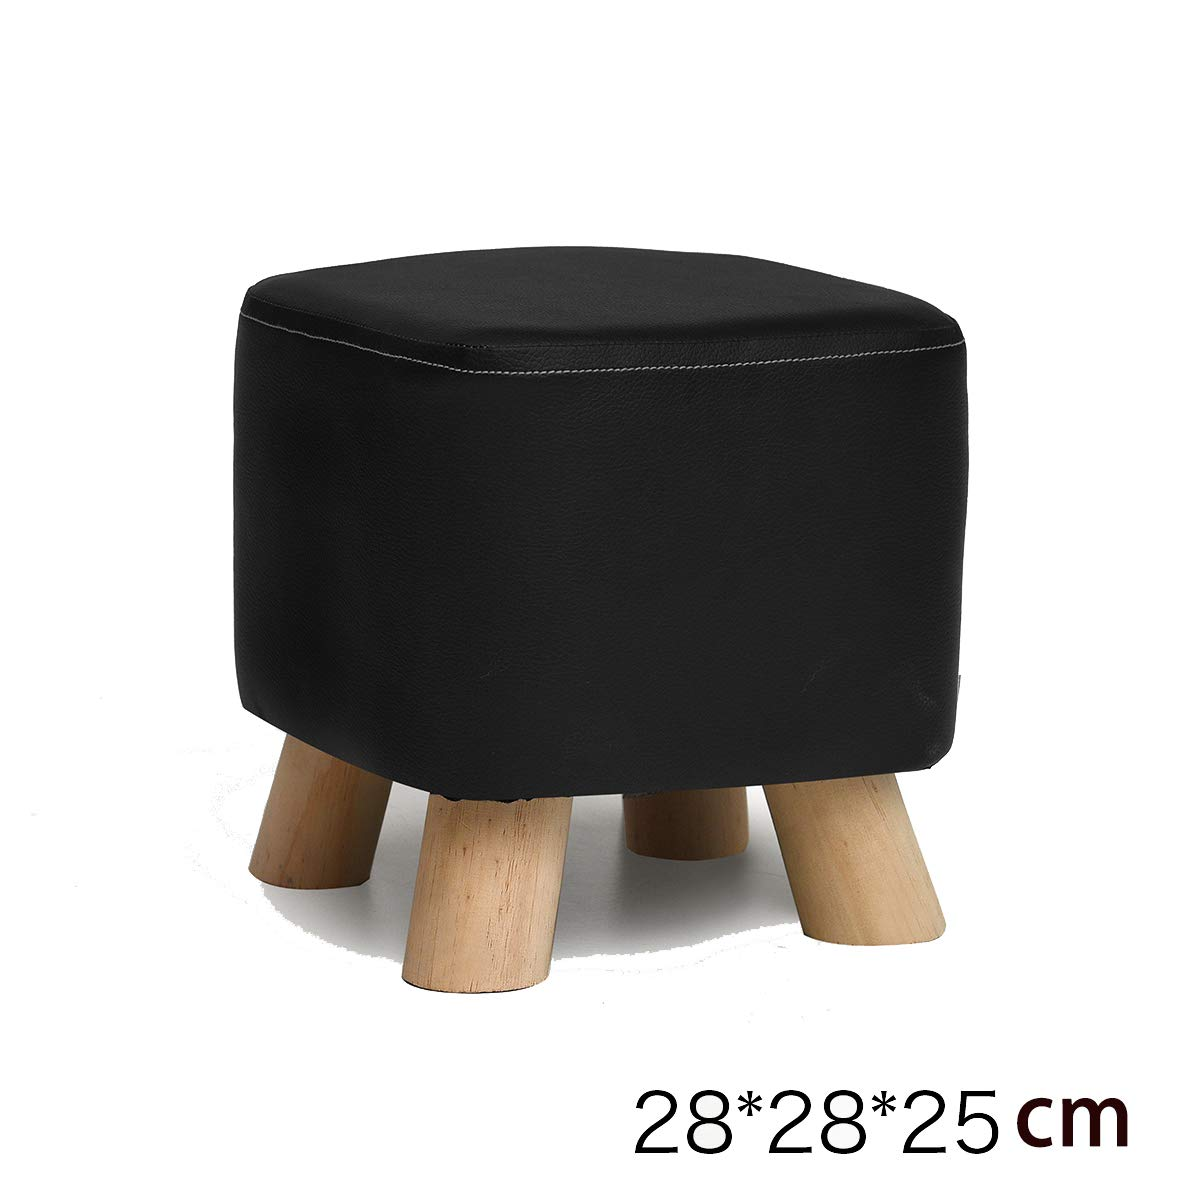 Square stool 5 28×28×25cm Square Stool, Padded Footstool, Home Pu Cover, 4 Legs and Detachable Linen Cover   28  28  25Cm   Beech (White)